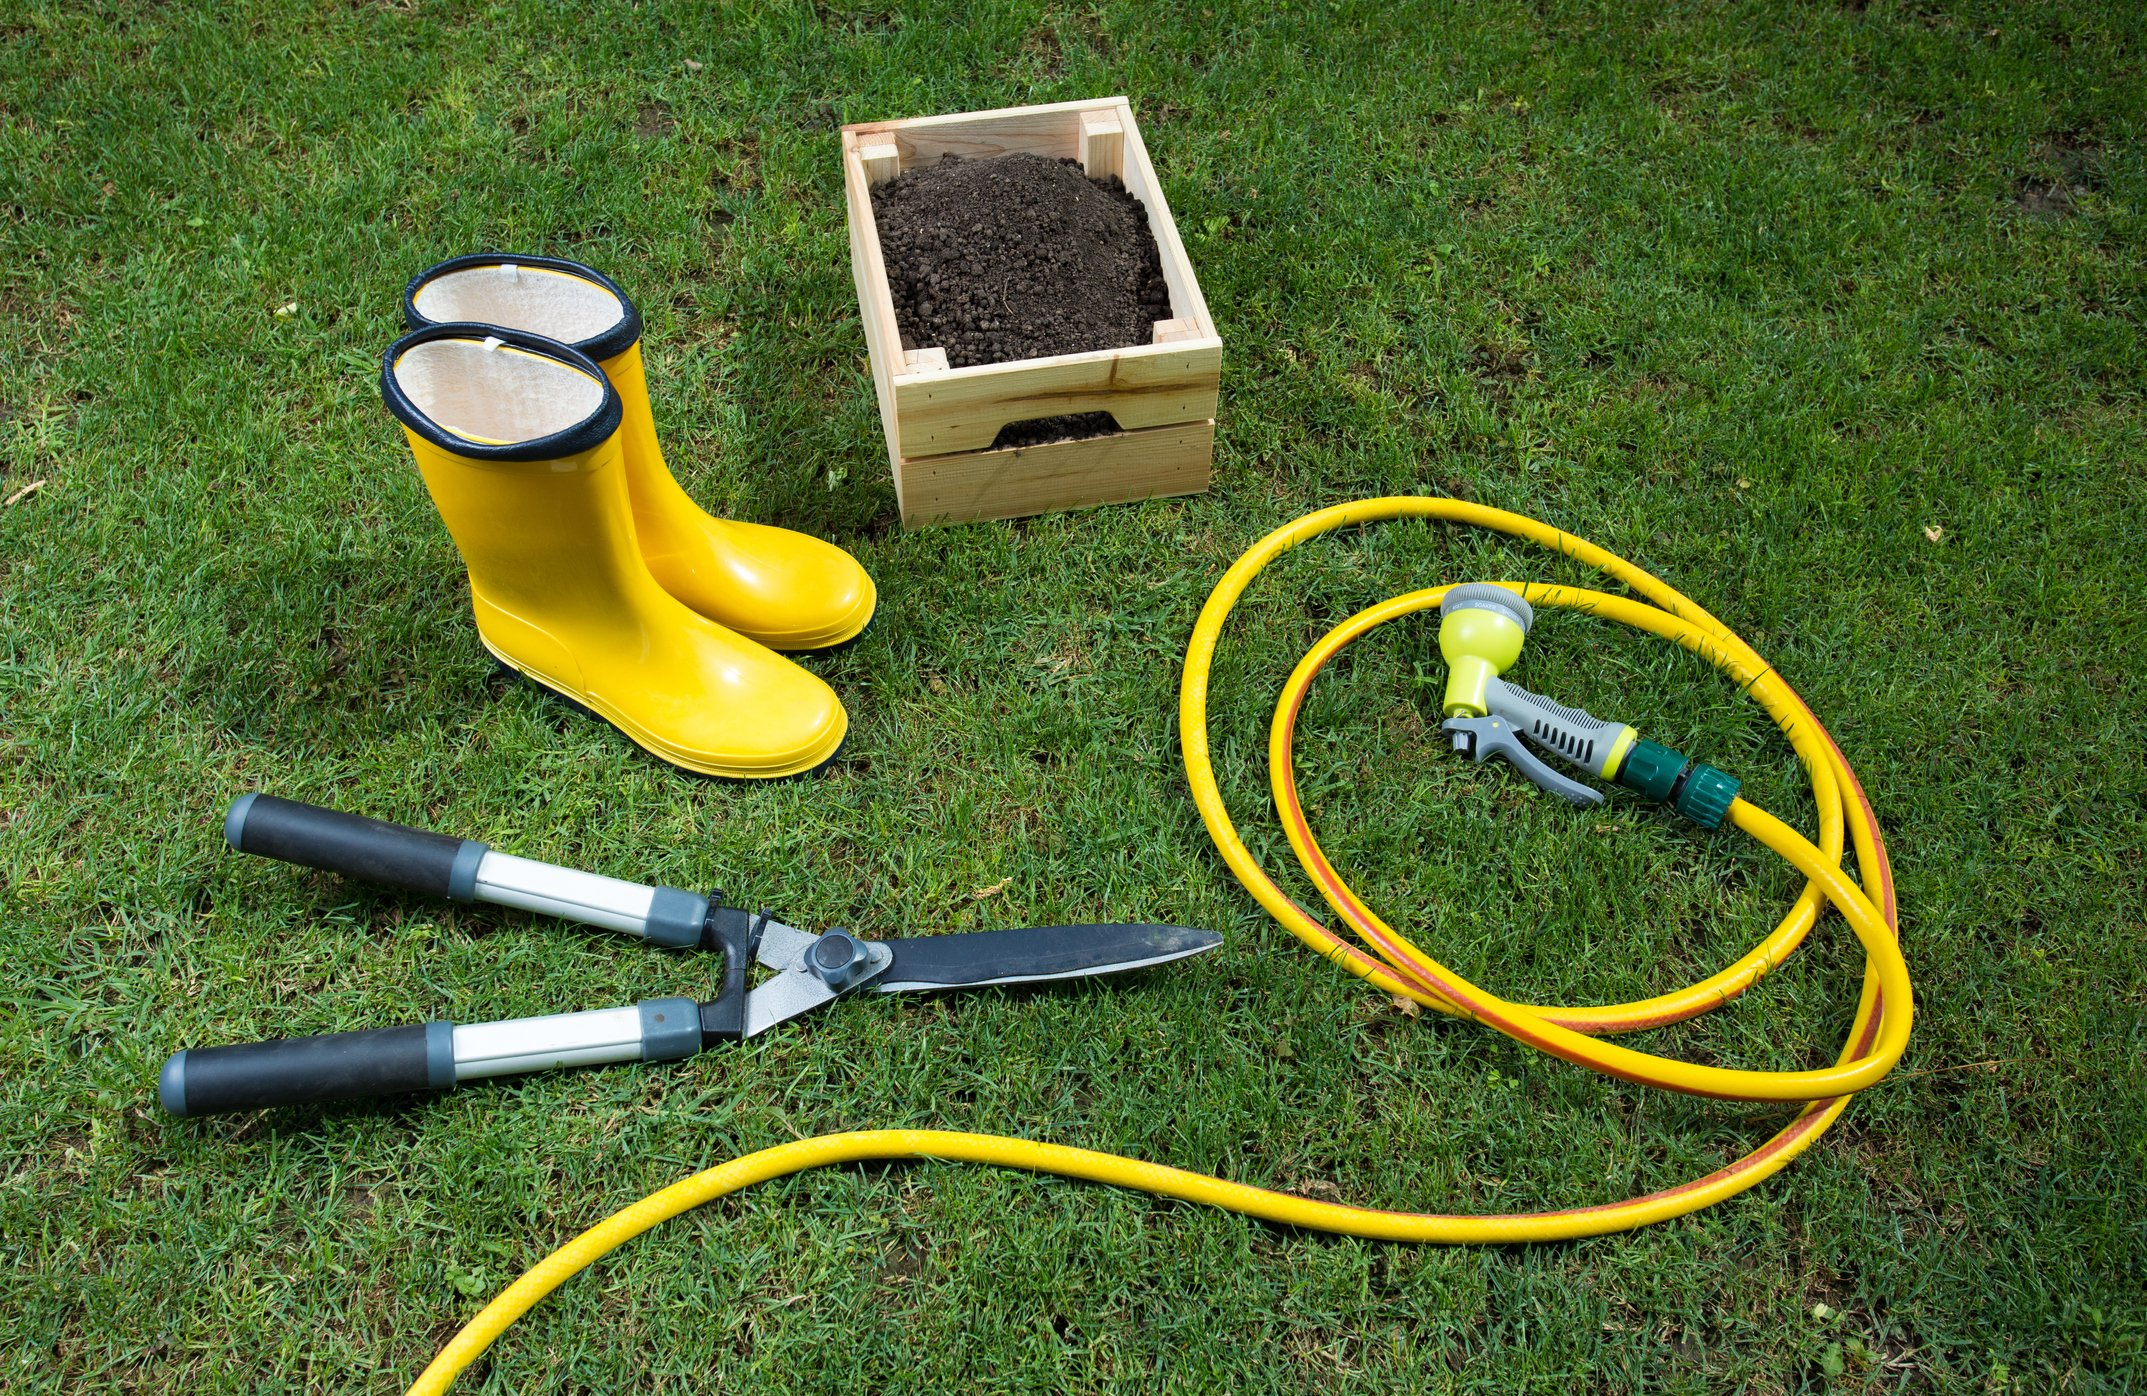 5 Important Tips For Spring Lawn Care - Featured Image